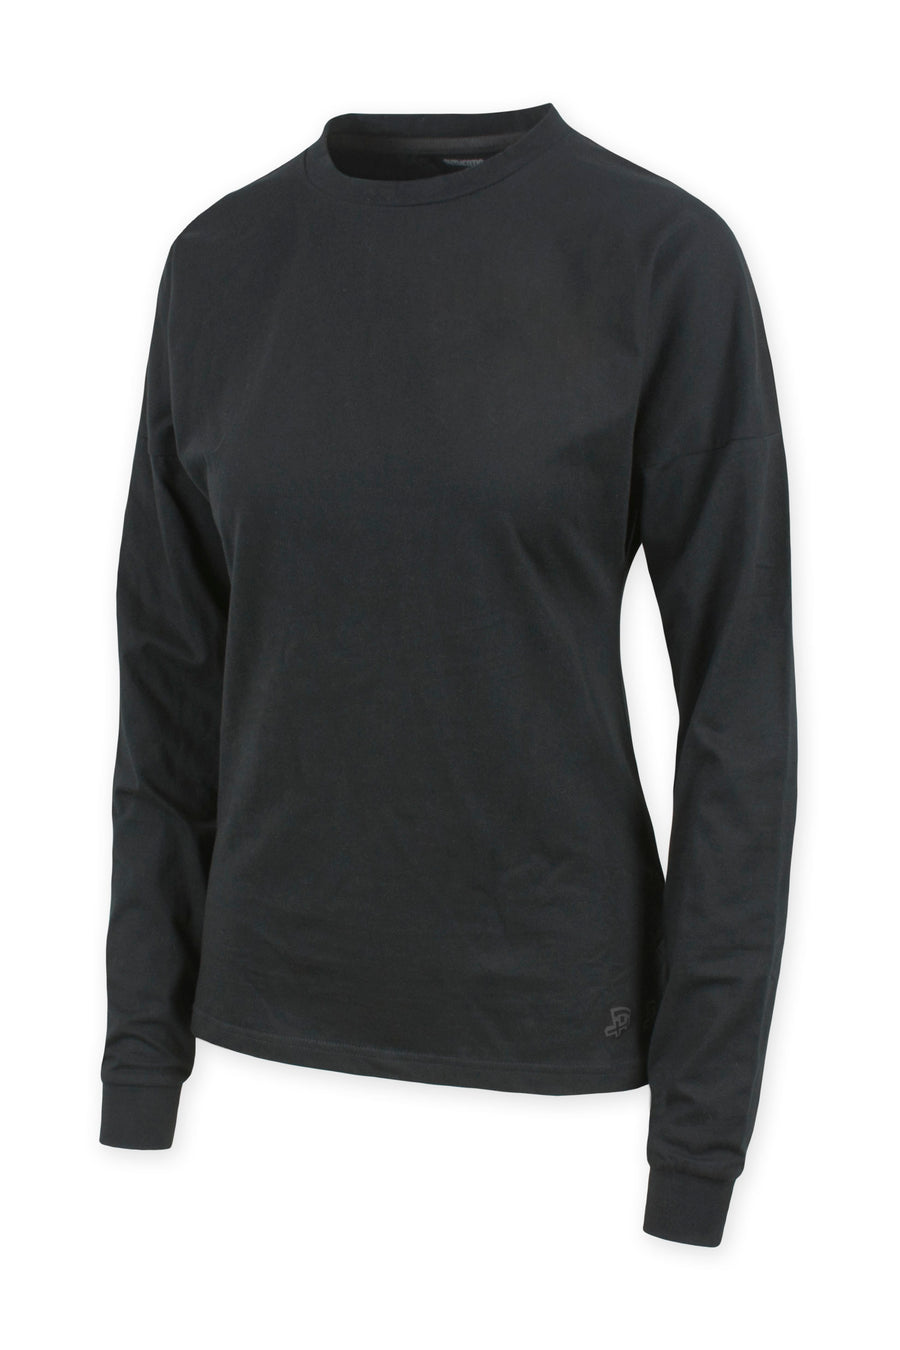 Silver Long Sleeve Shirt